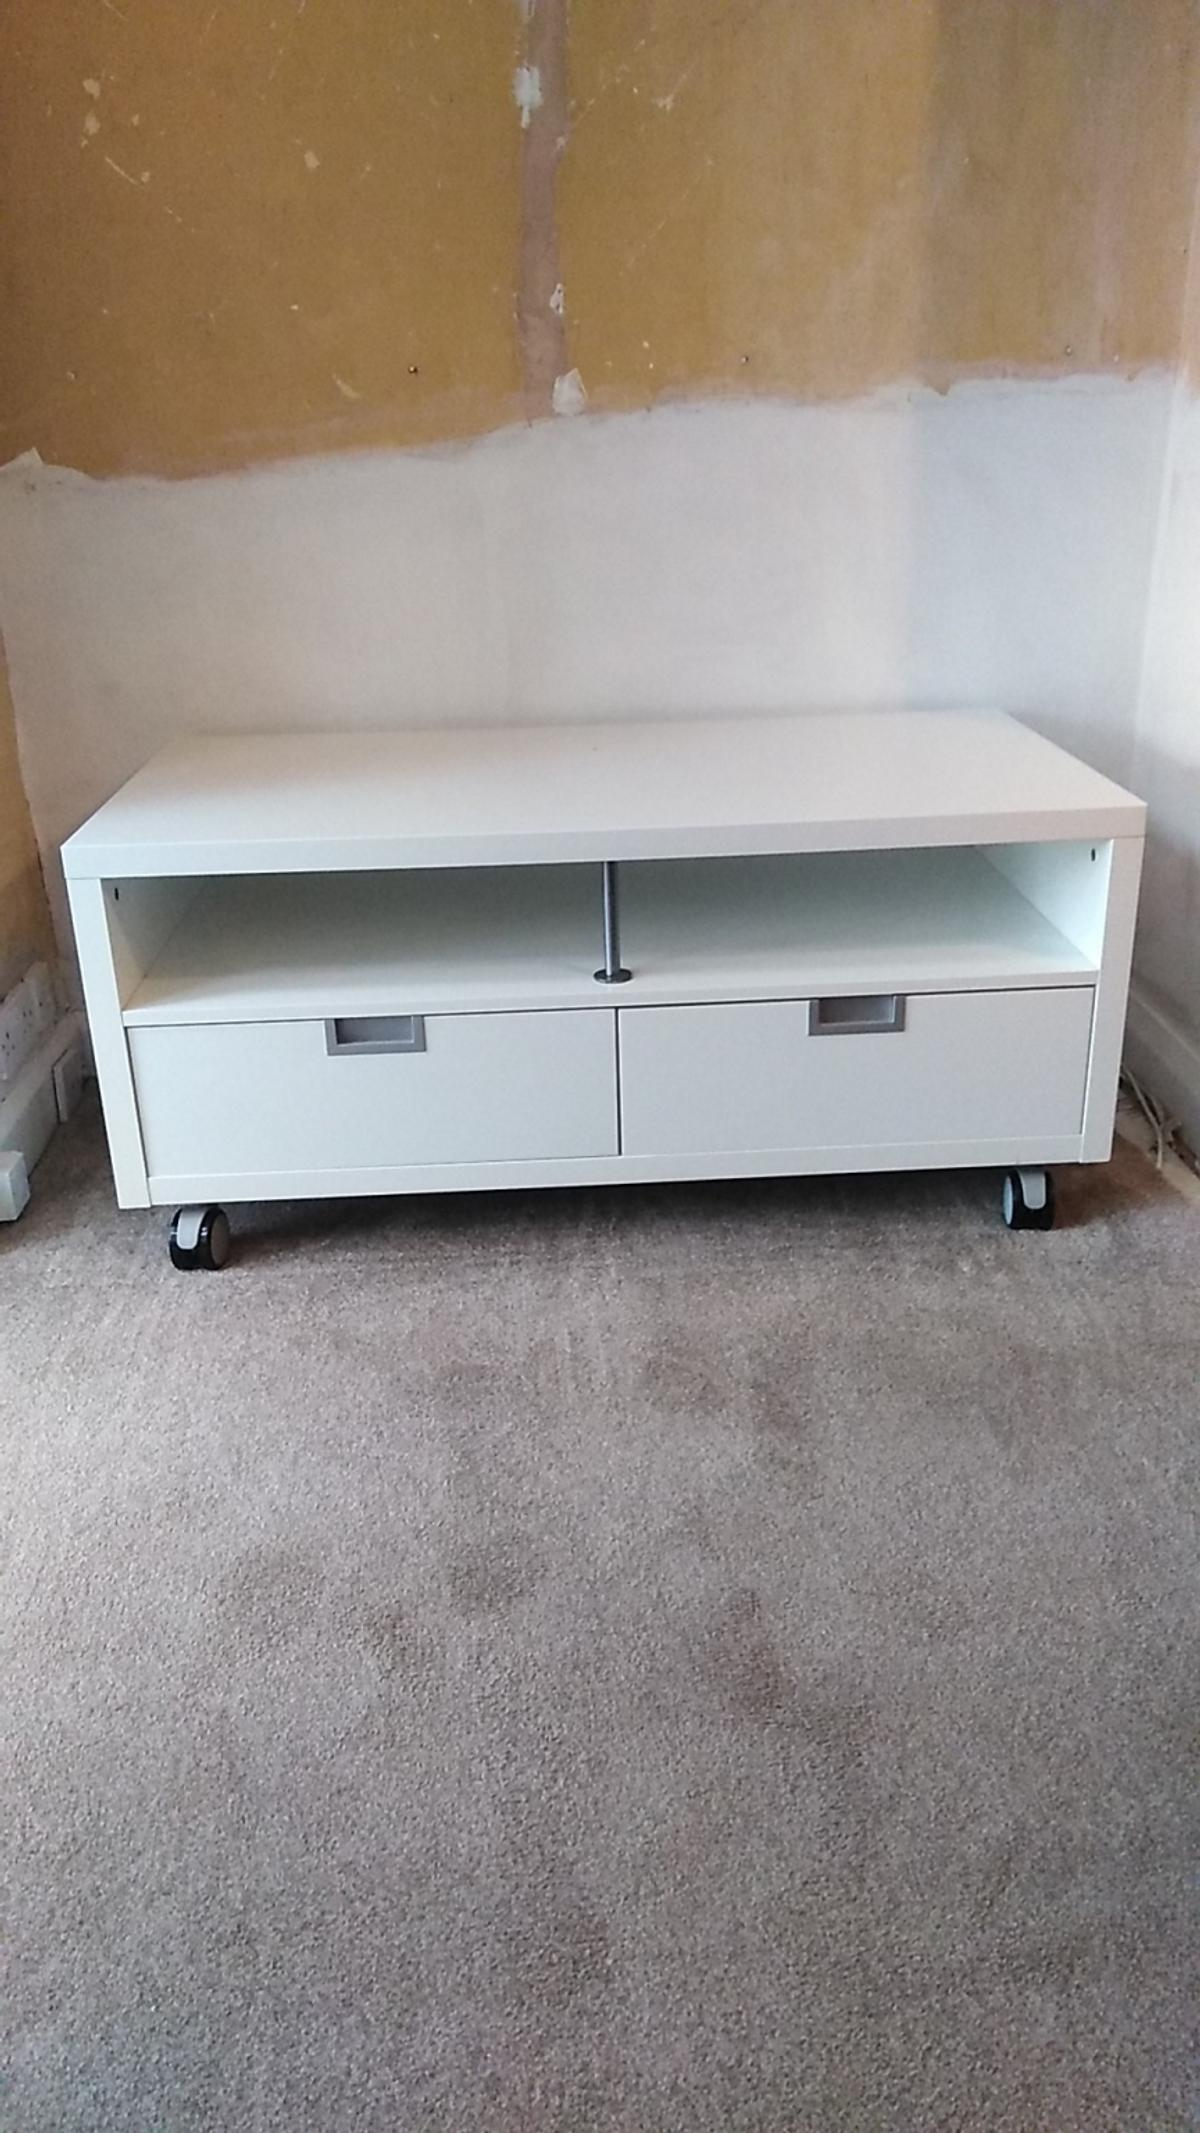 Ikea Besta Jagra Tv Stand In Hd6 Calderdale For 35 00 For Sale